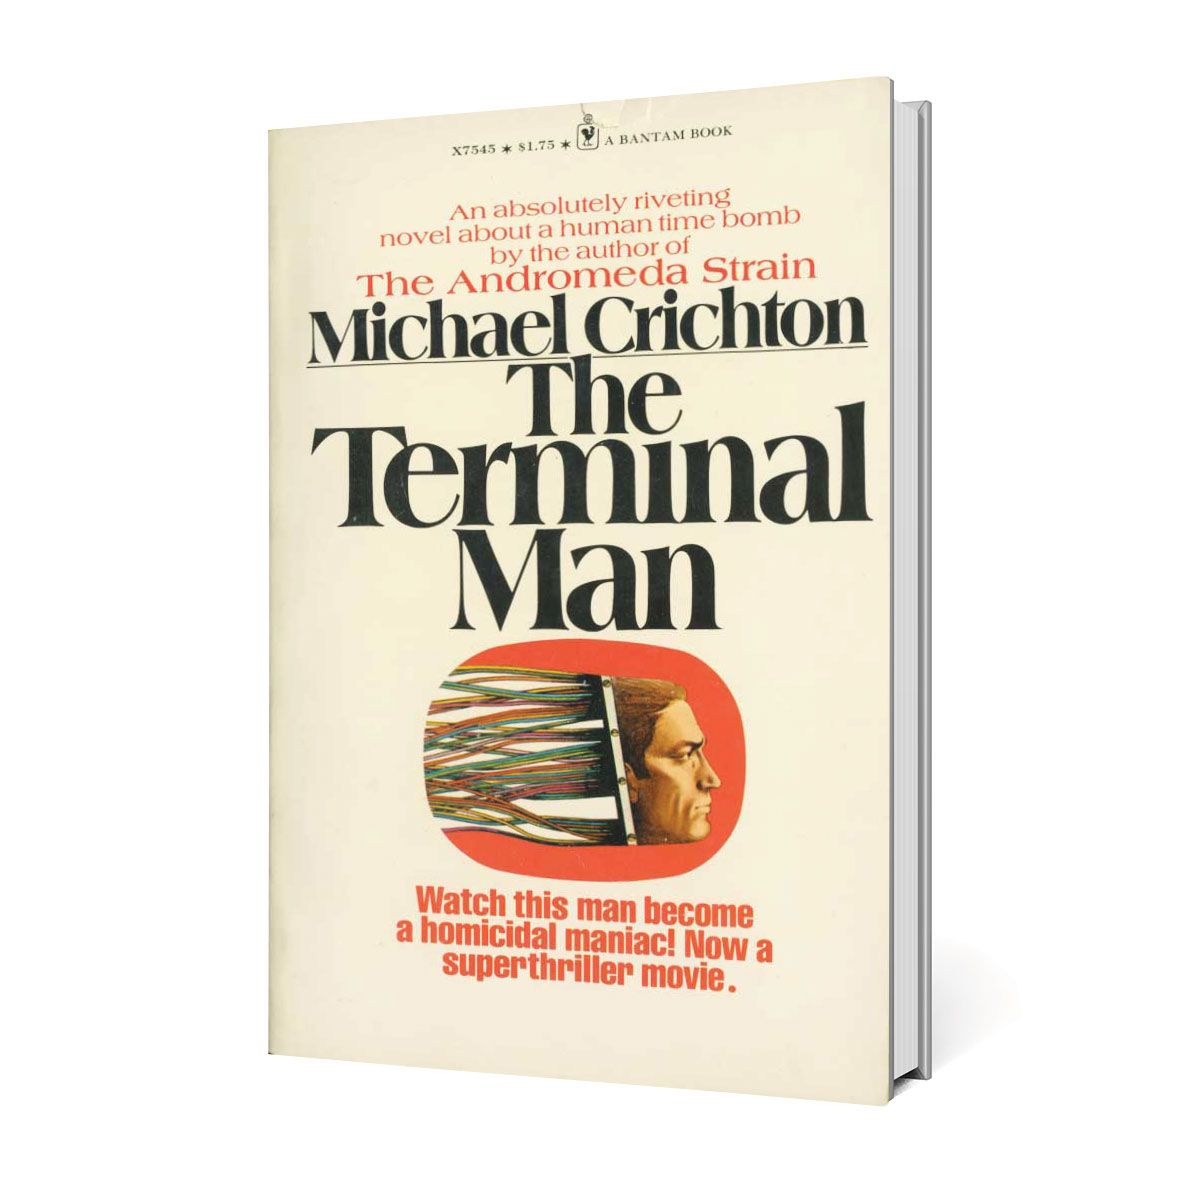 an analysis of the novel the terminal man by michael crichton Final script for the 1973 film, based on the 1972 novel by michael crichton noted director mike hodges' third film, and first to be made in the us after get carter in 1971 and pulp in 1972 segal plays a scientist who agrees to an experimental treatment wherein a tiny computer is implanted in his head to help control violent tendencies.